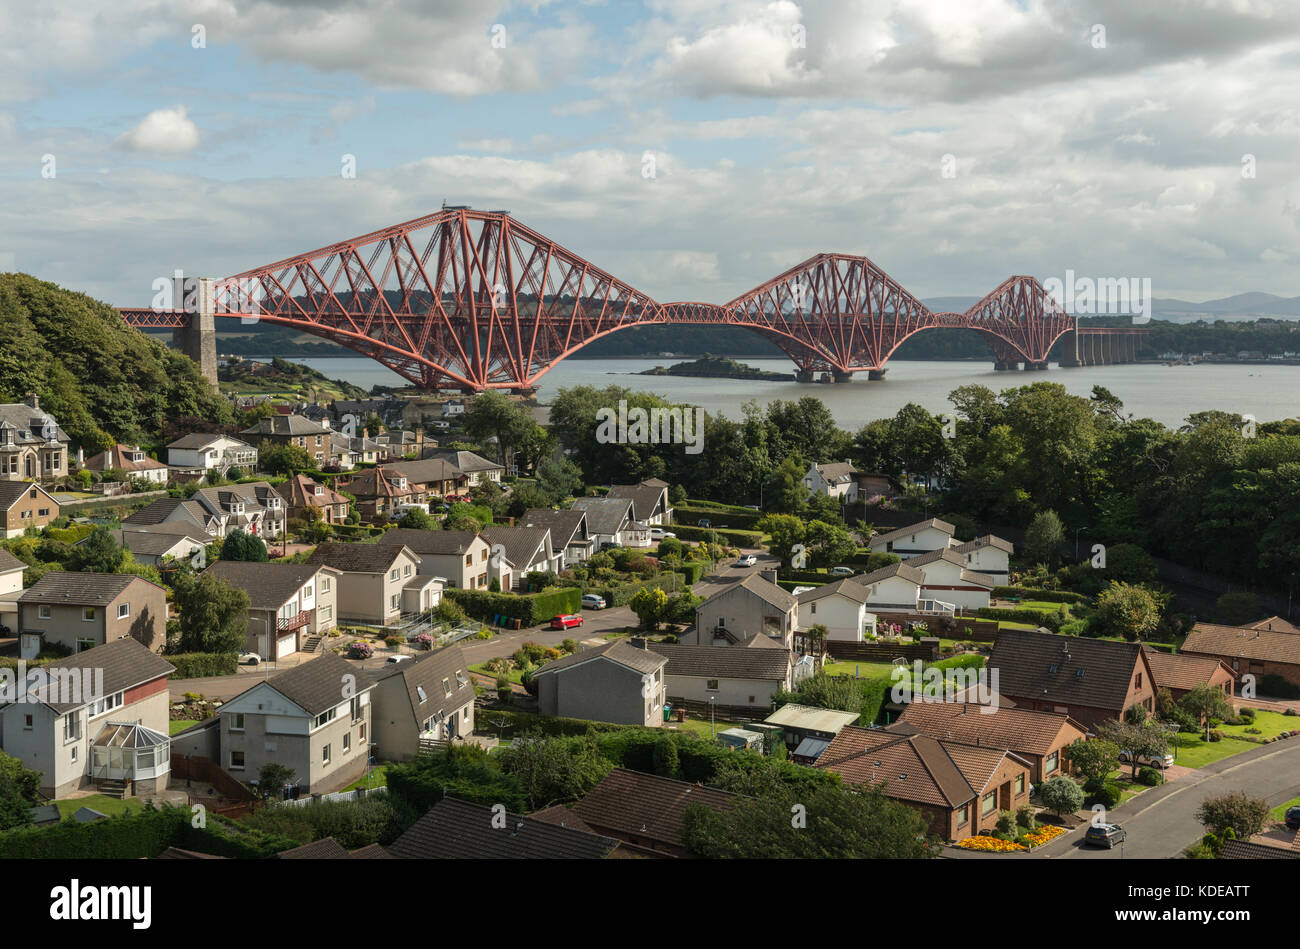 Forth Bridge von North Queensferry, Schottland, Großbritannien Stockbild